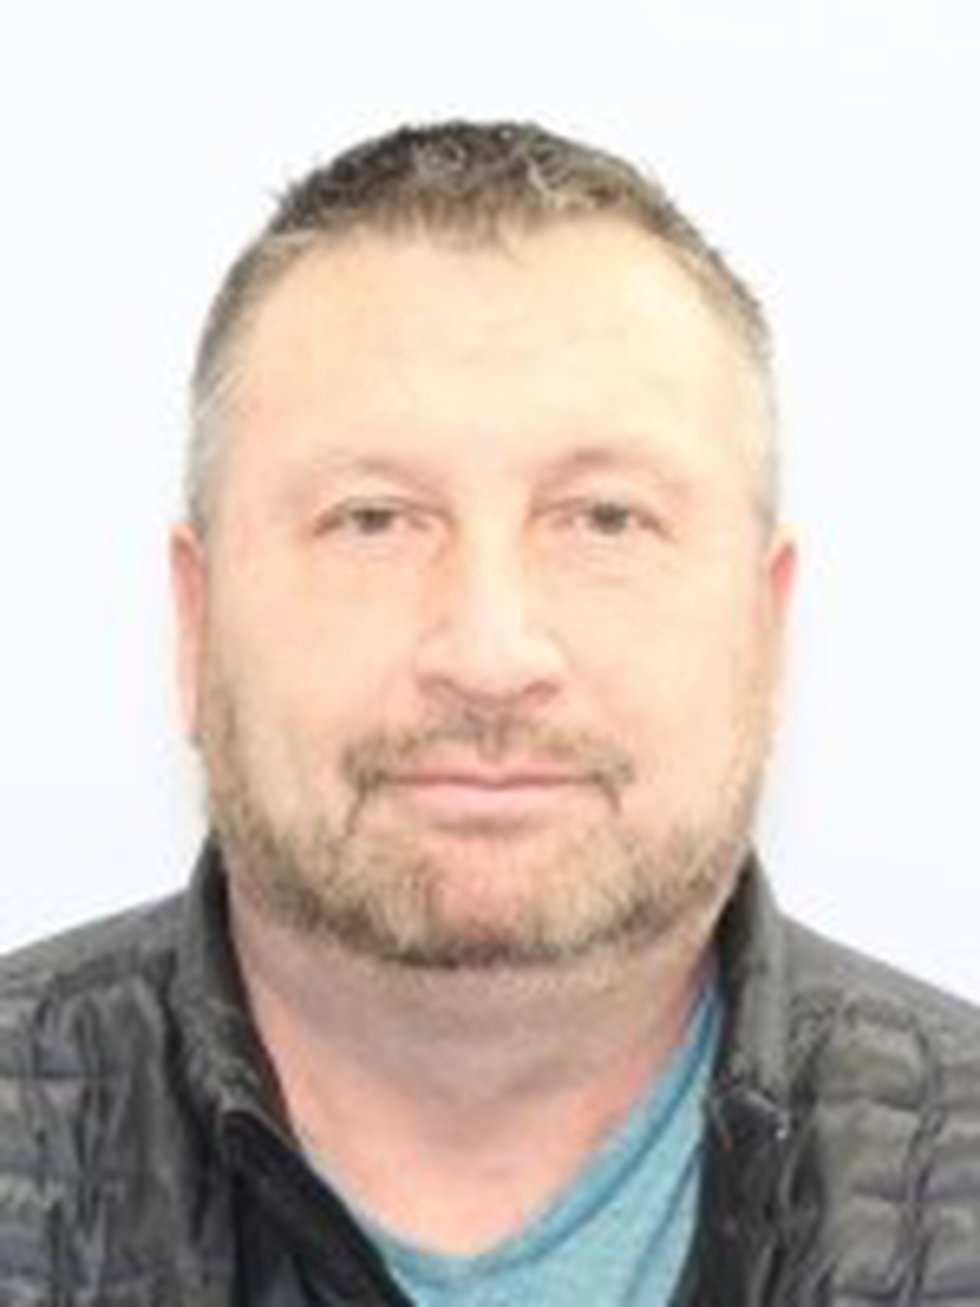 Daniel Manweiler, 54, was arrested for answering an on-line advertisement offering explicit...